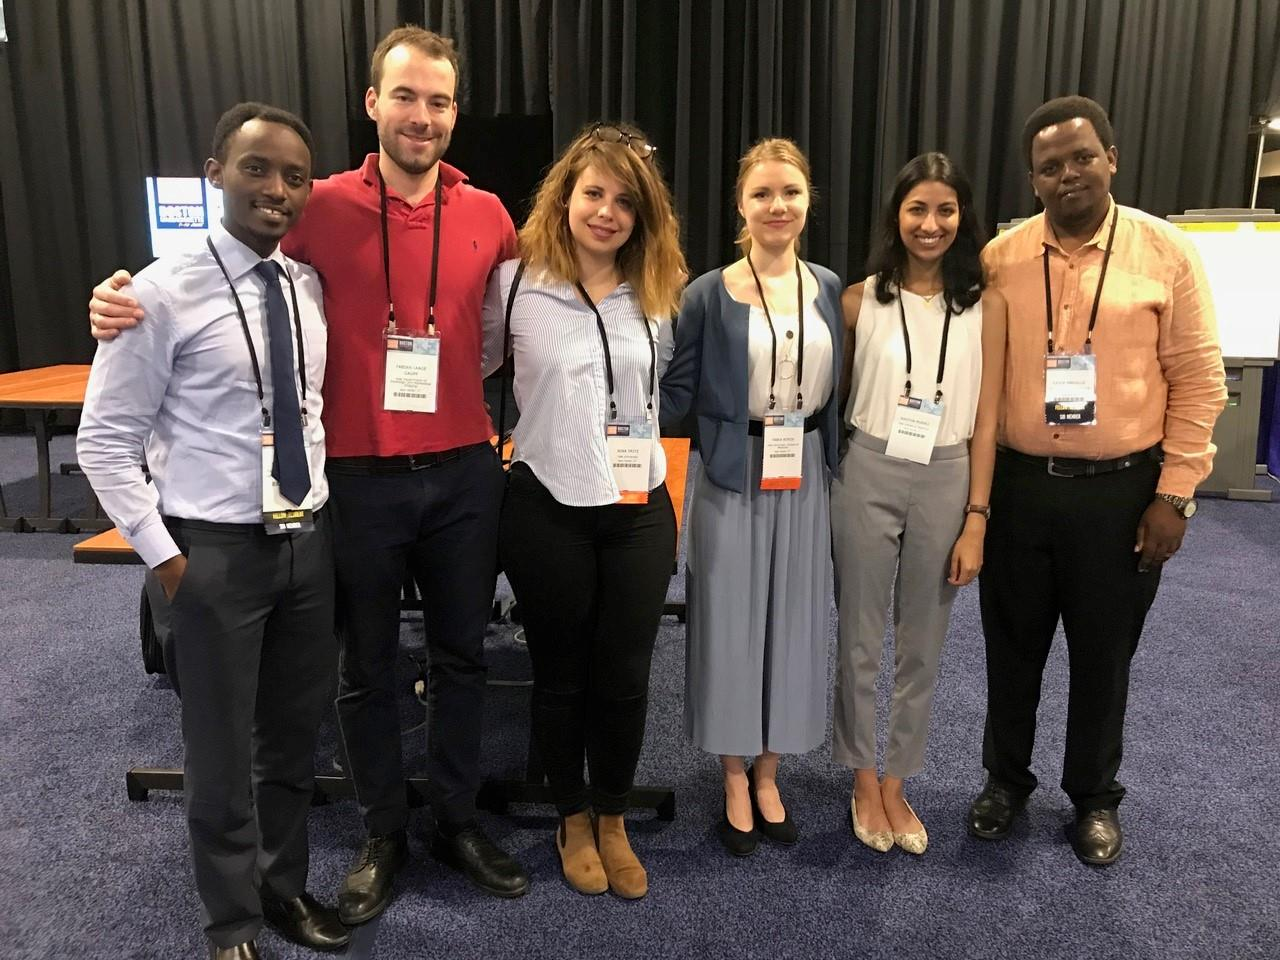 Trainees and medical students from Tanzania, the US, Germany, and France at WCIO 2018